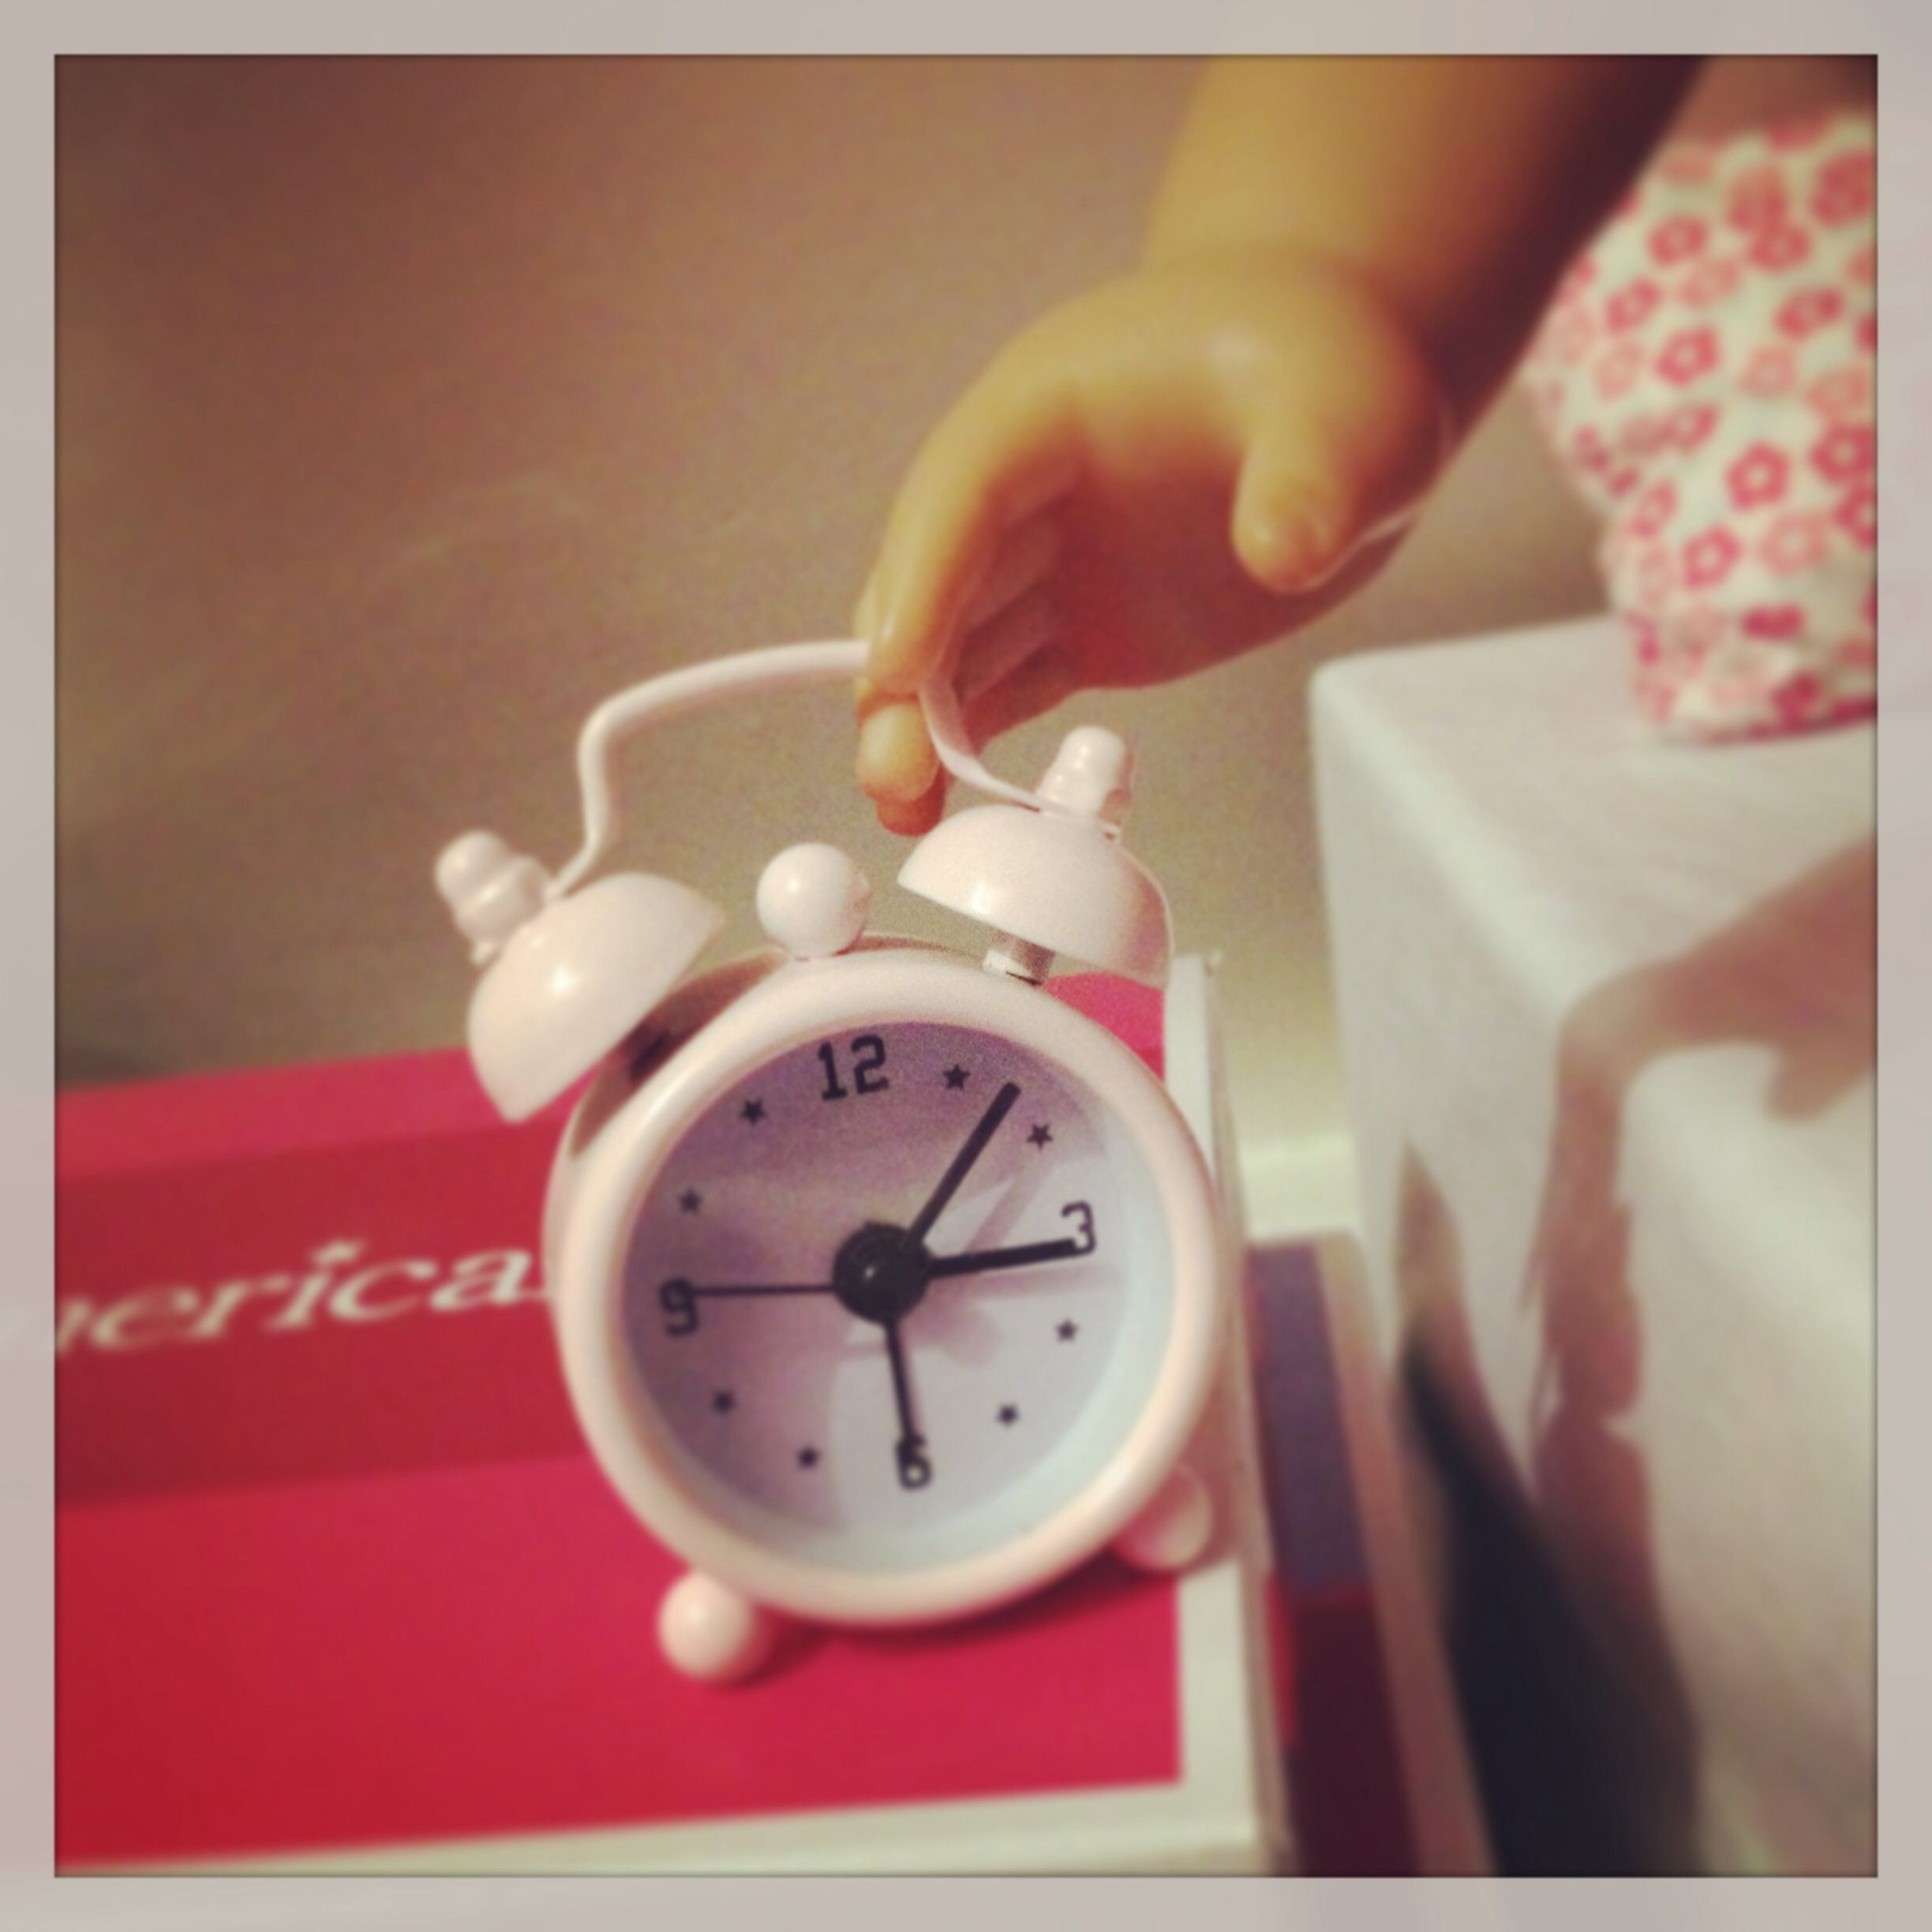 Bed Bath & Beyond has doll size alarm clocks like this one for $6